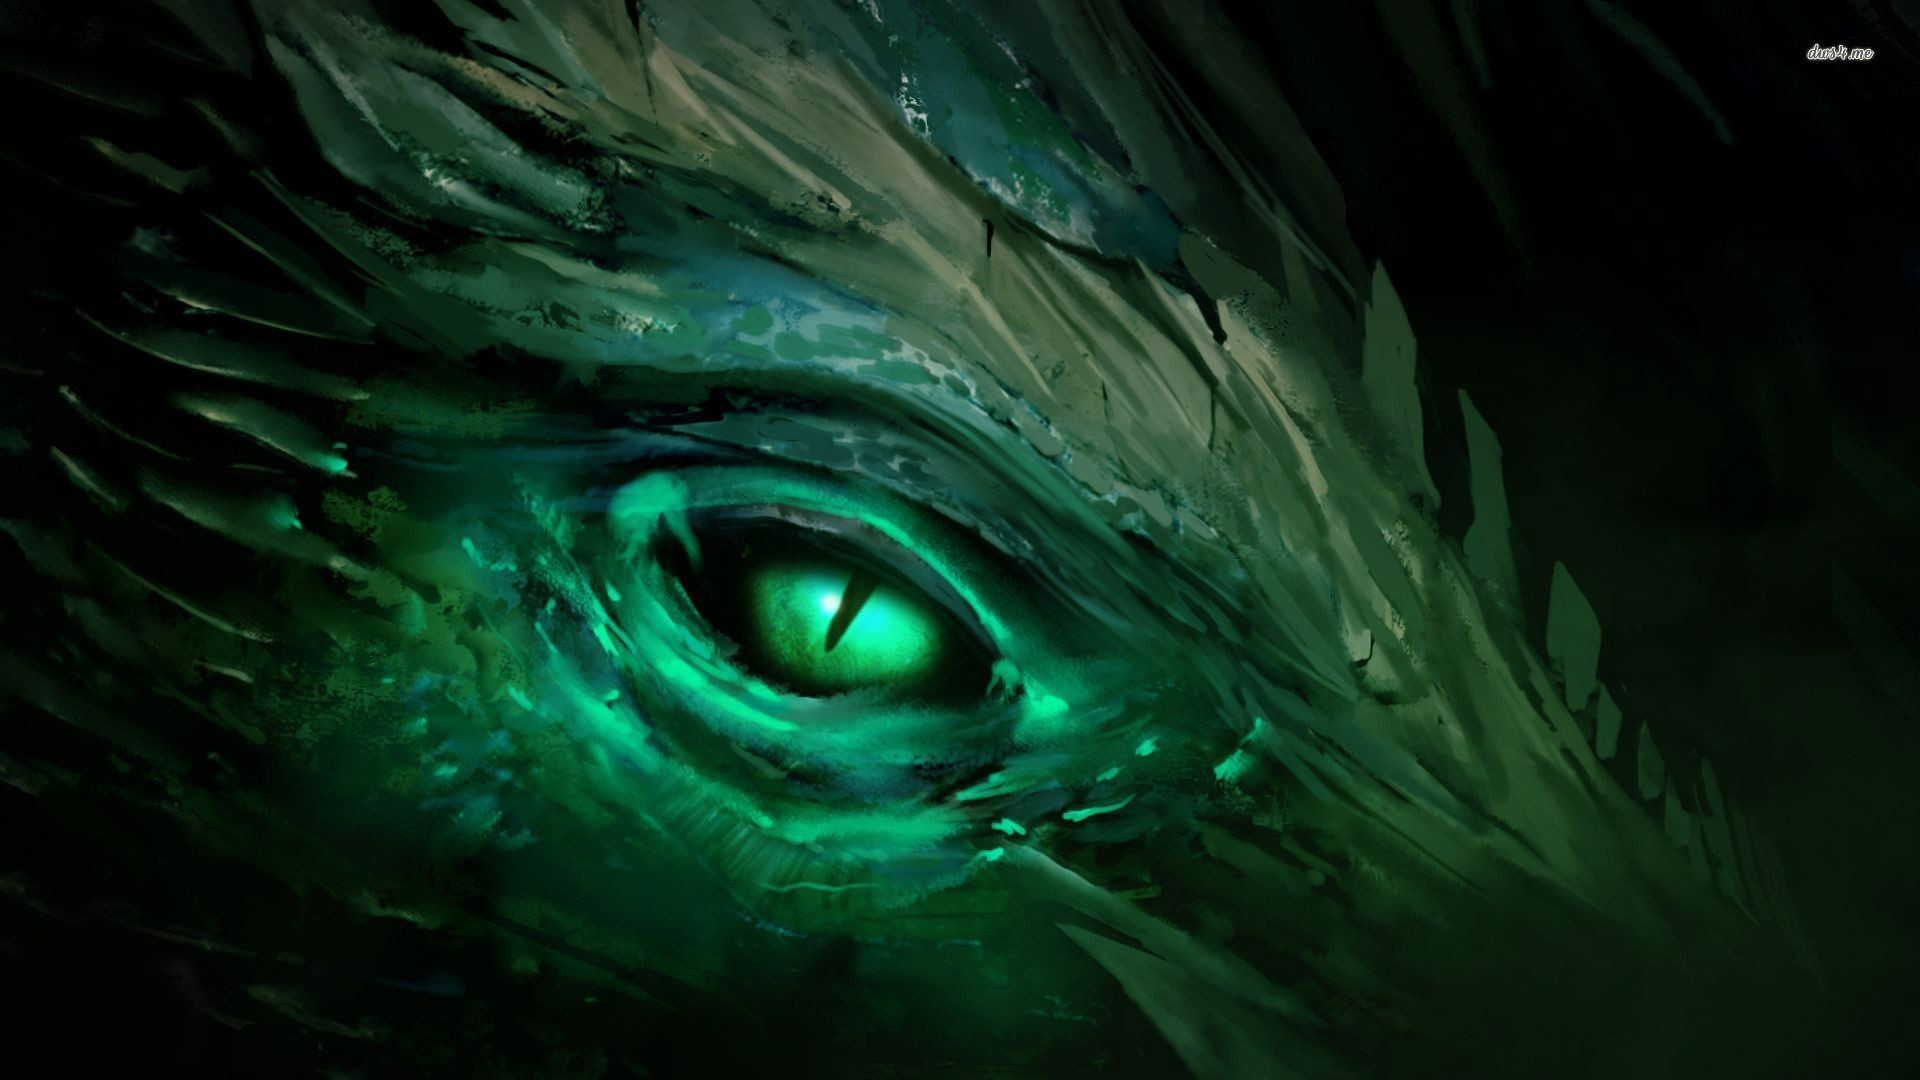 1920x1080 Dragon Eye Wallpapers - Wallpaper Cave